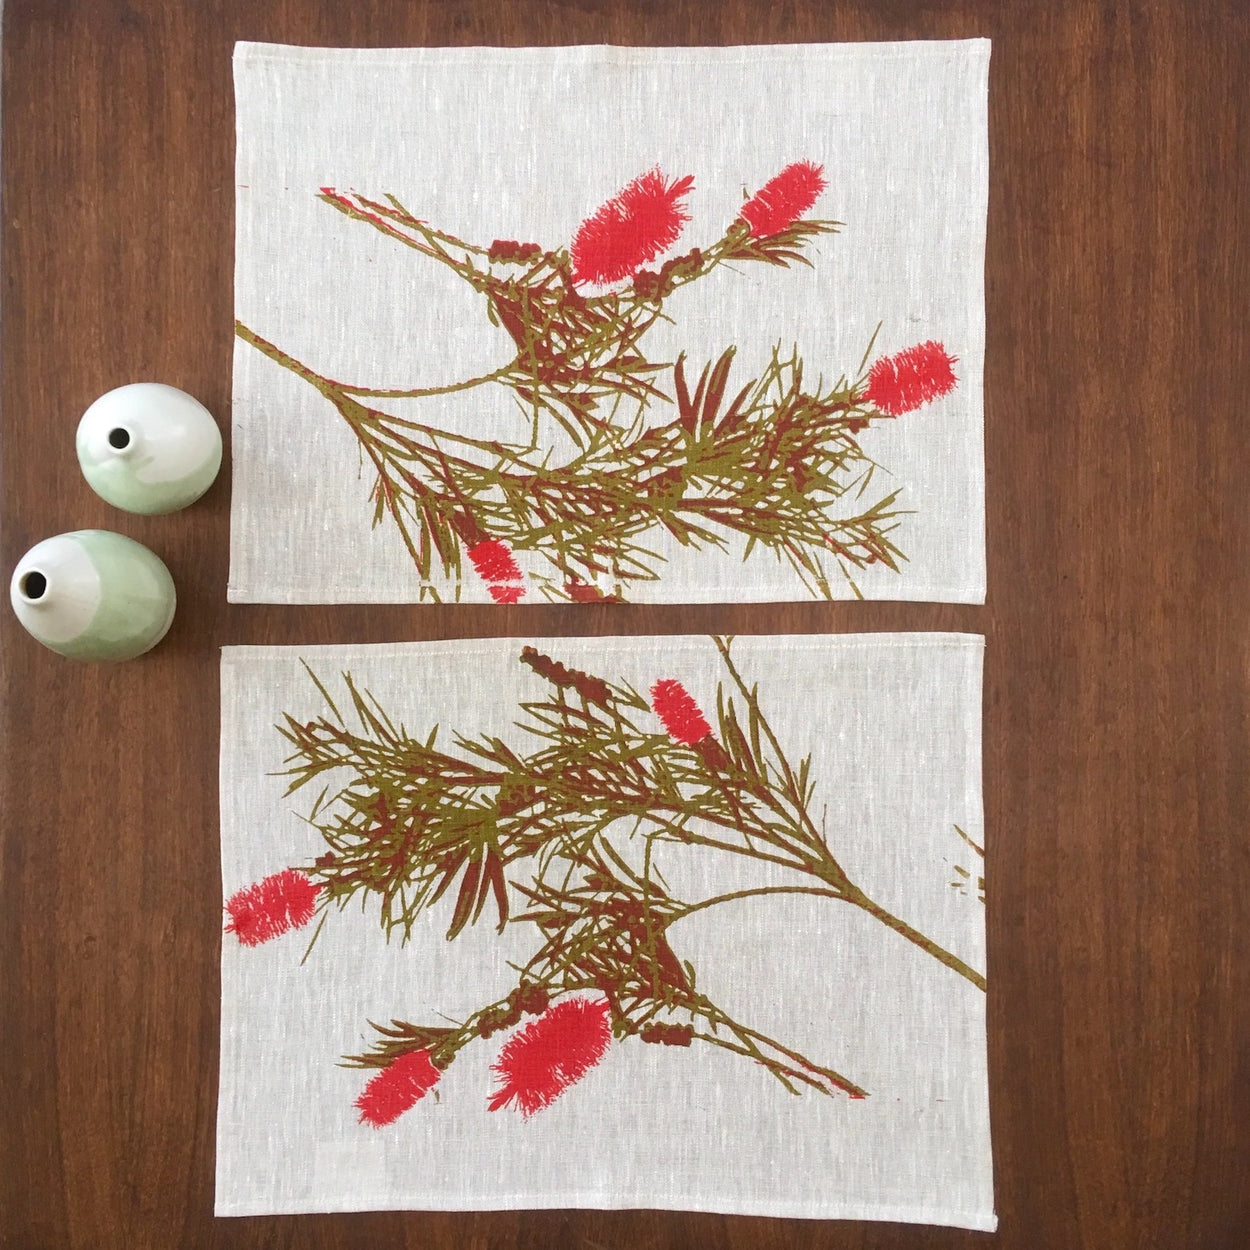 Photograph of Bottlebrush screenprinted on a linen placemats.